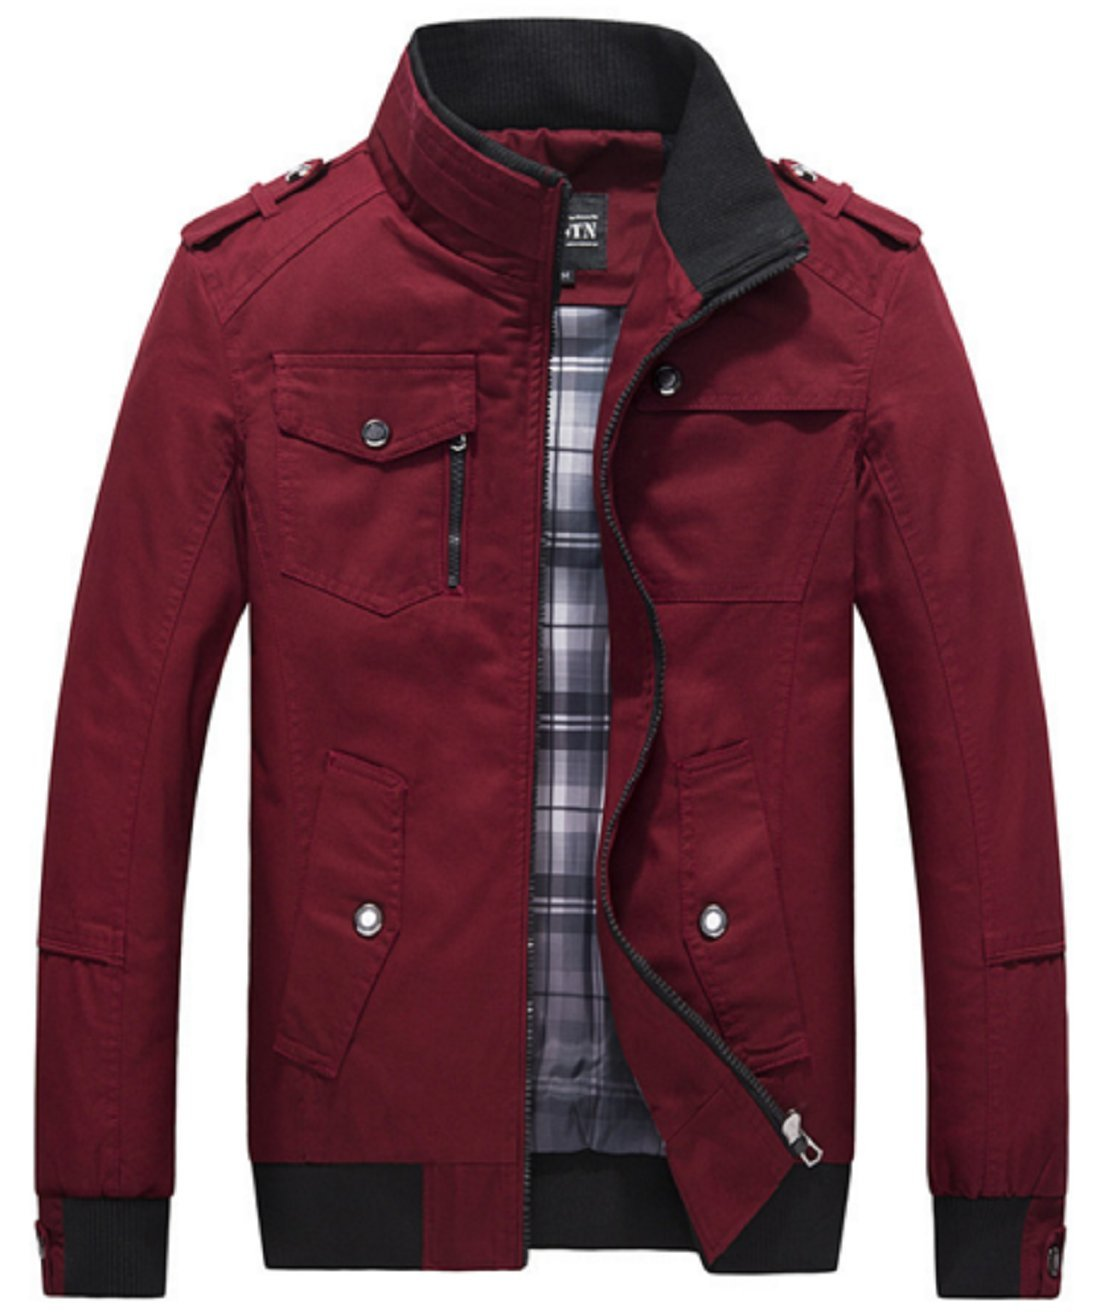 Olrek Men's Autumn and Fall Stand Colllar Outerwear Jacket Coat(Red,X-Small)